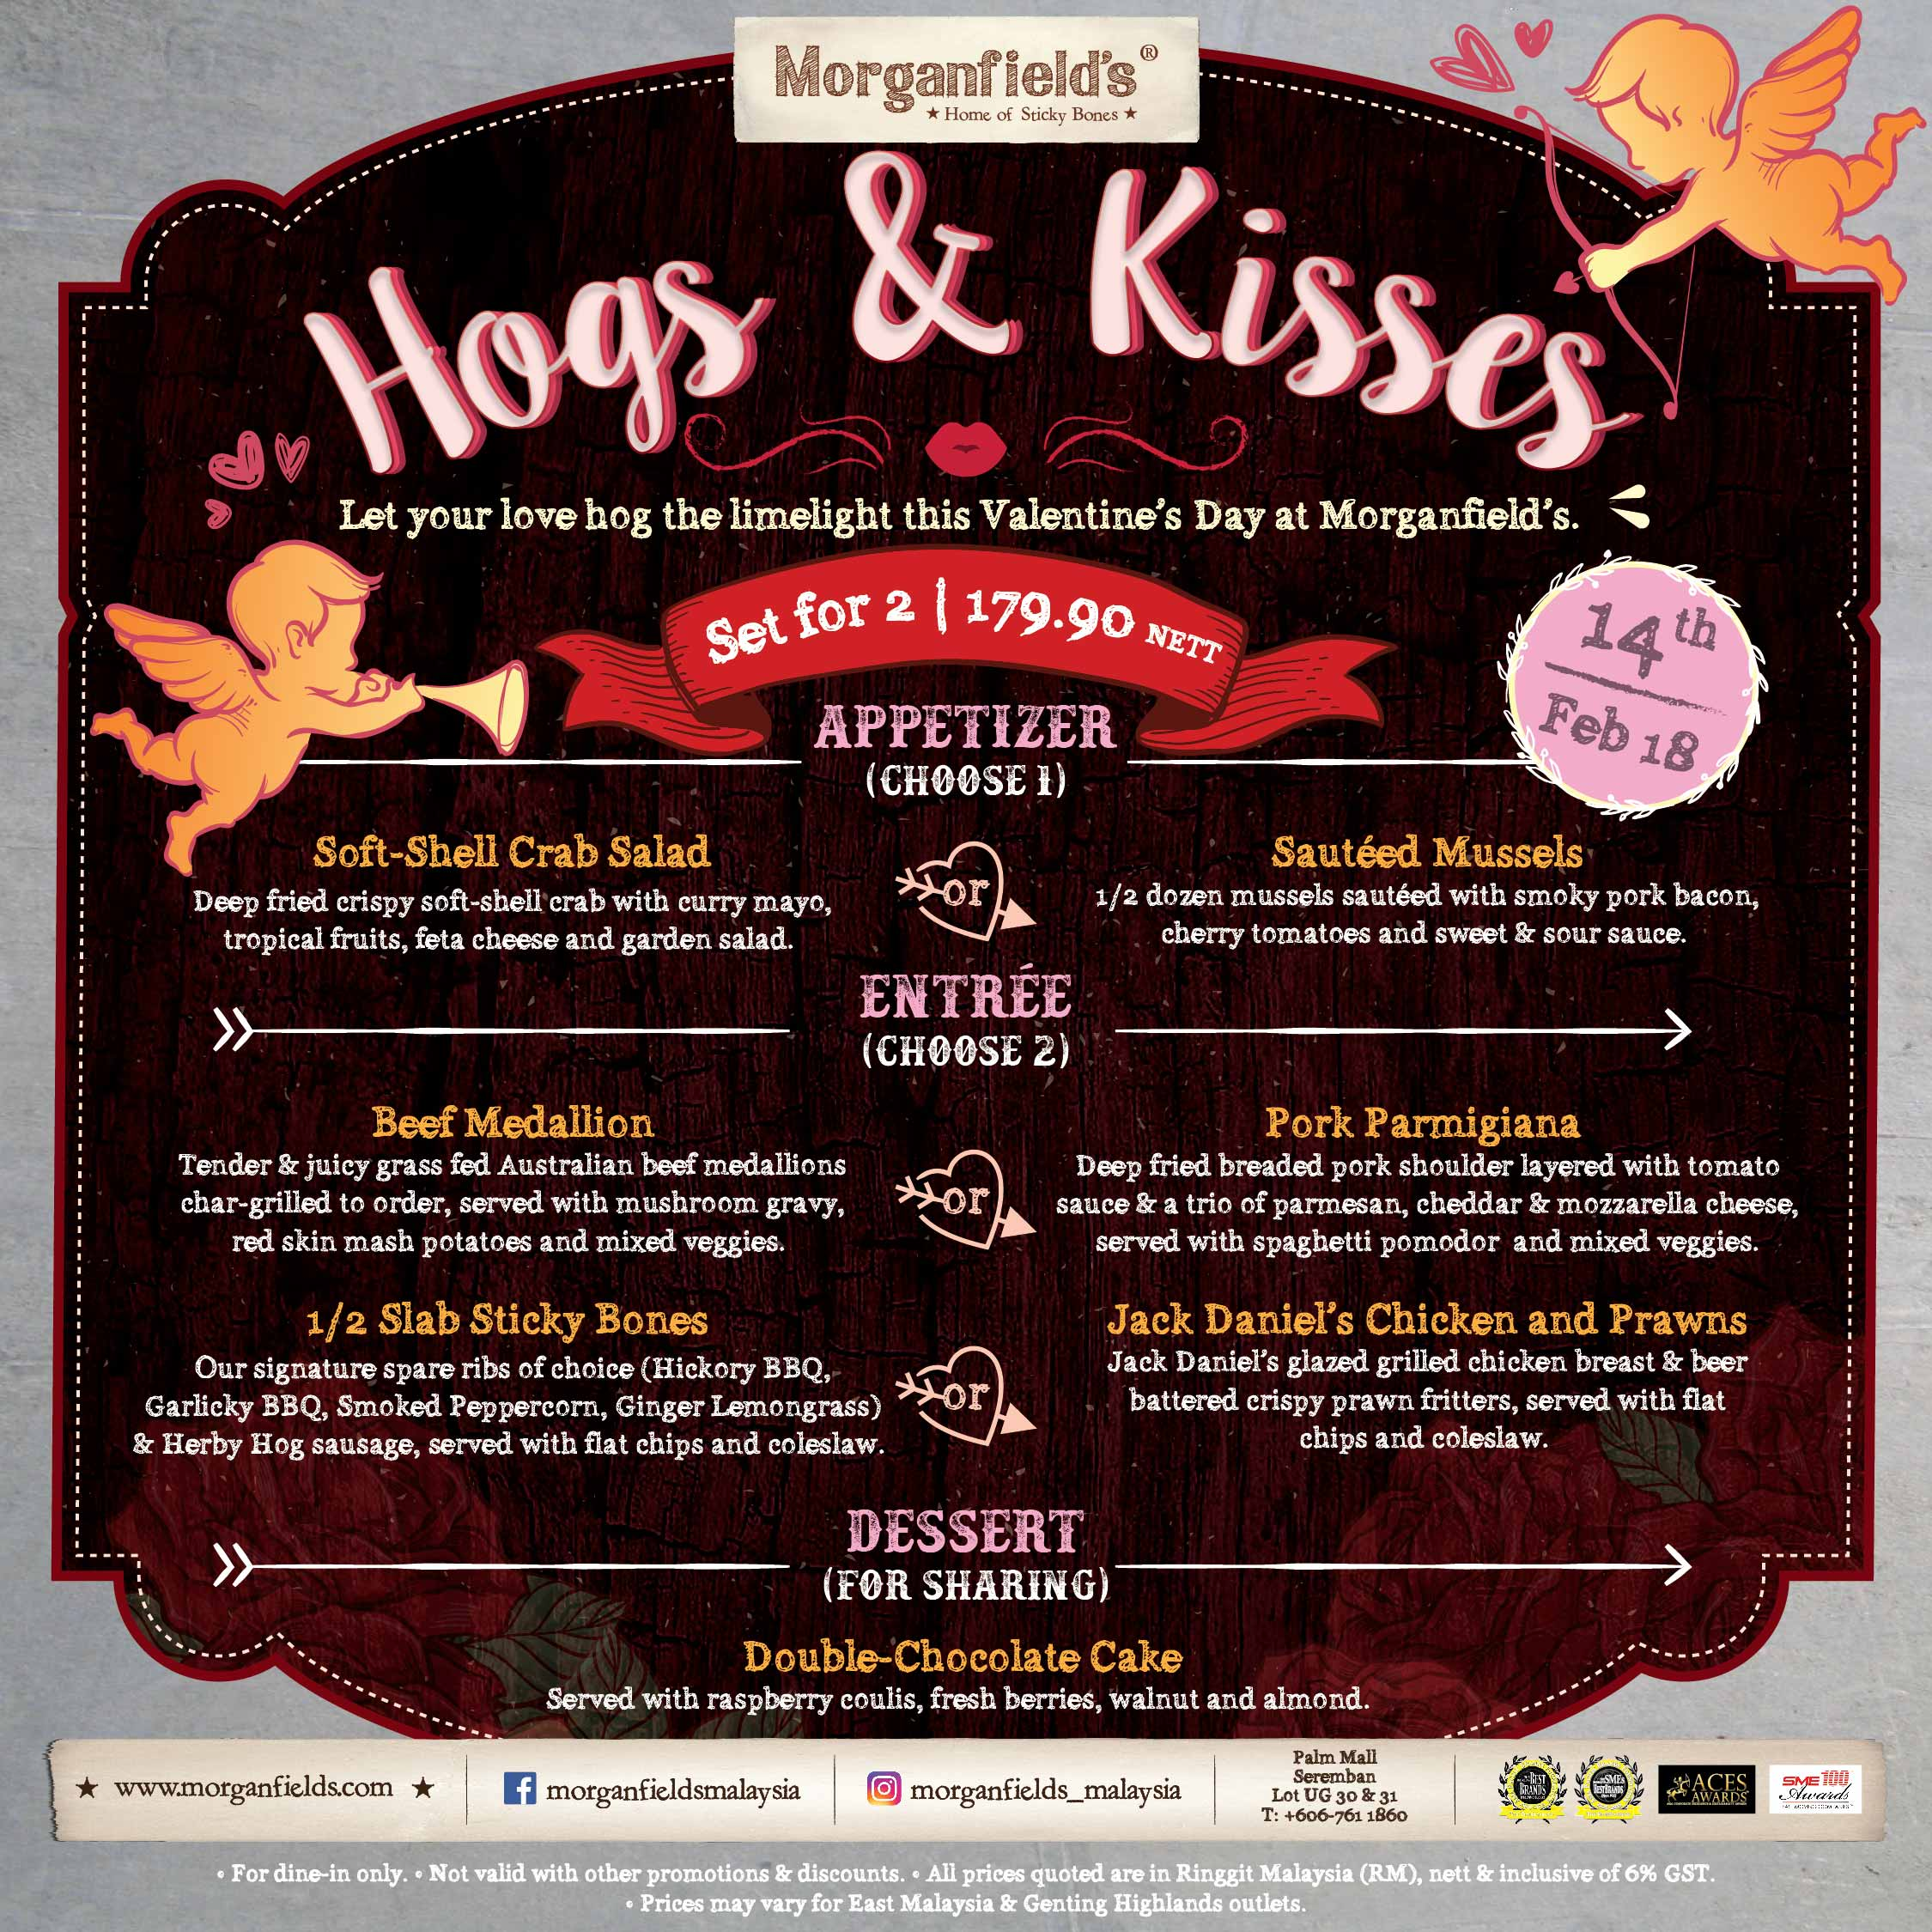 Morganfield's Valentine's Day Promo